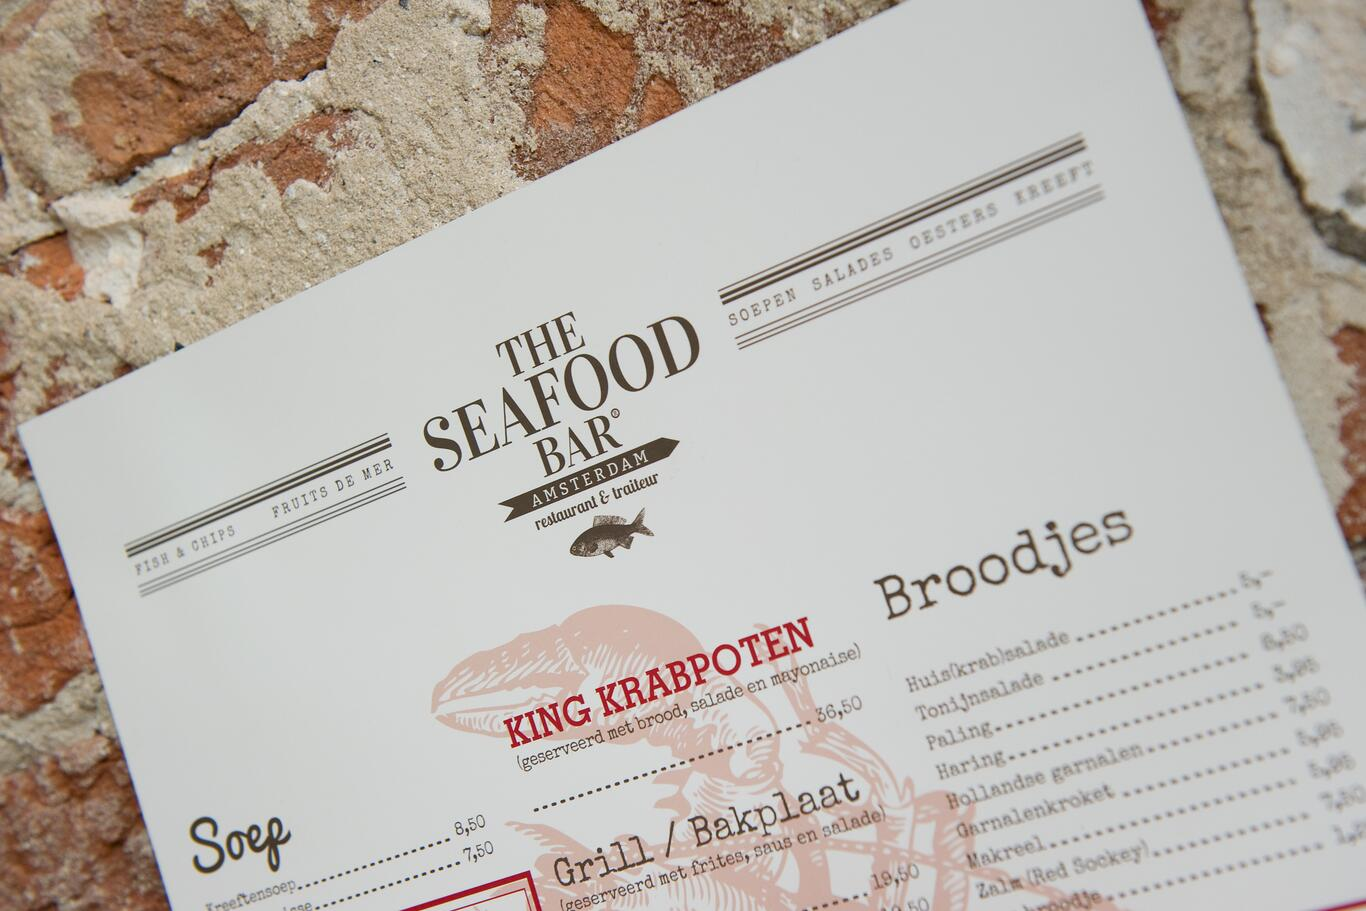 Menu design for the Seafood bar, Amsterdam